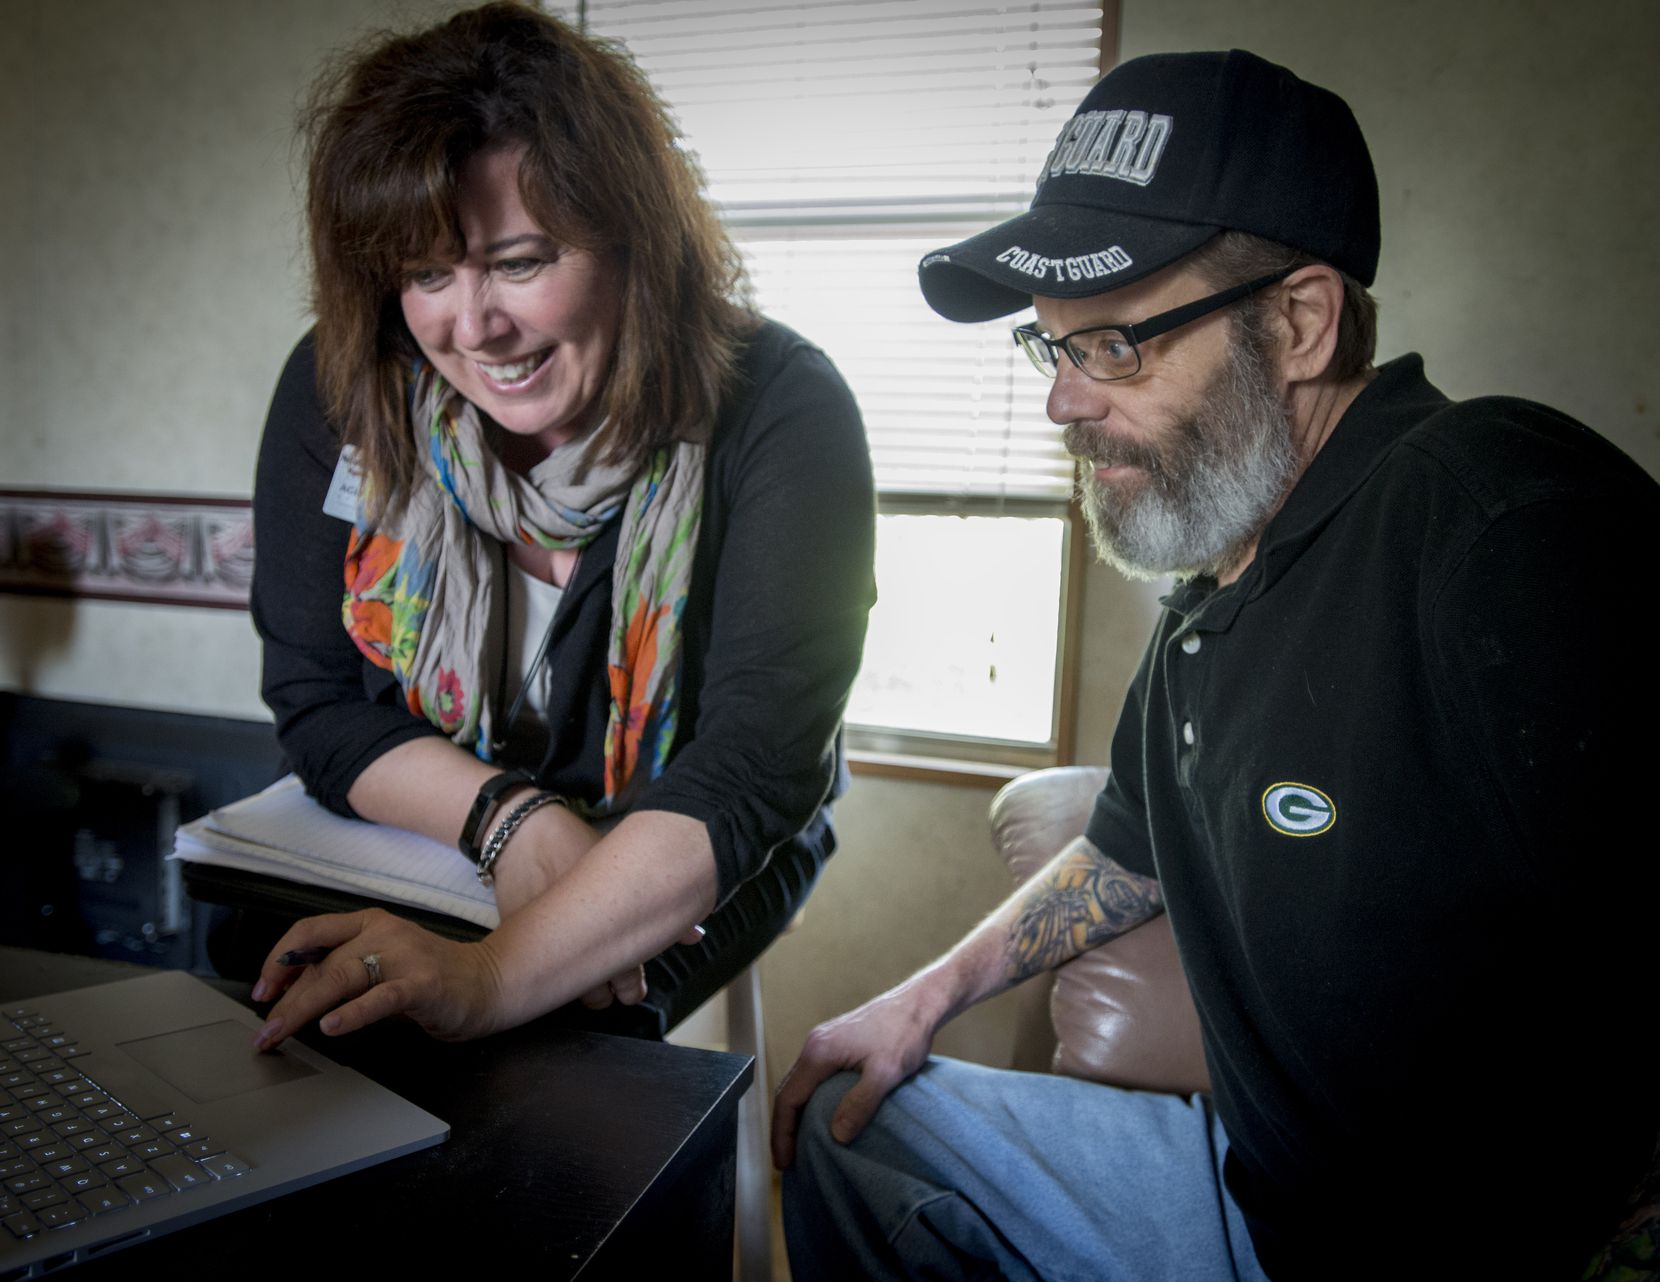 Geriatric care manager Nicole Kulas goes over personal health data with Stephen Kelly in his Roanoke, Texas, home.